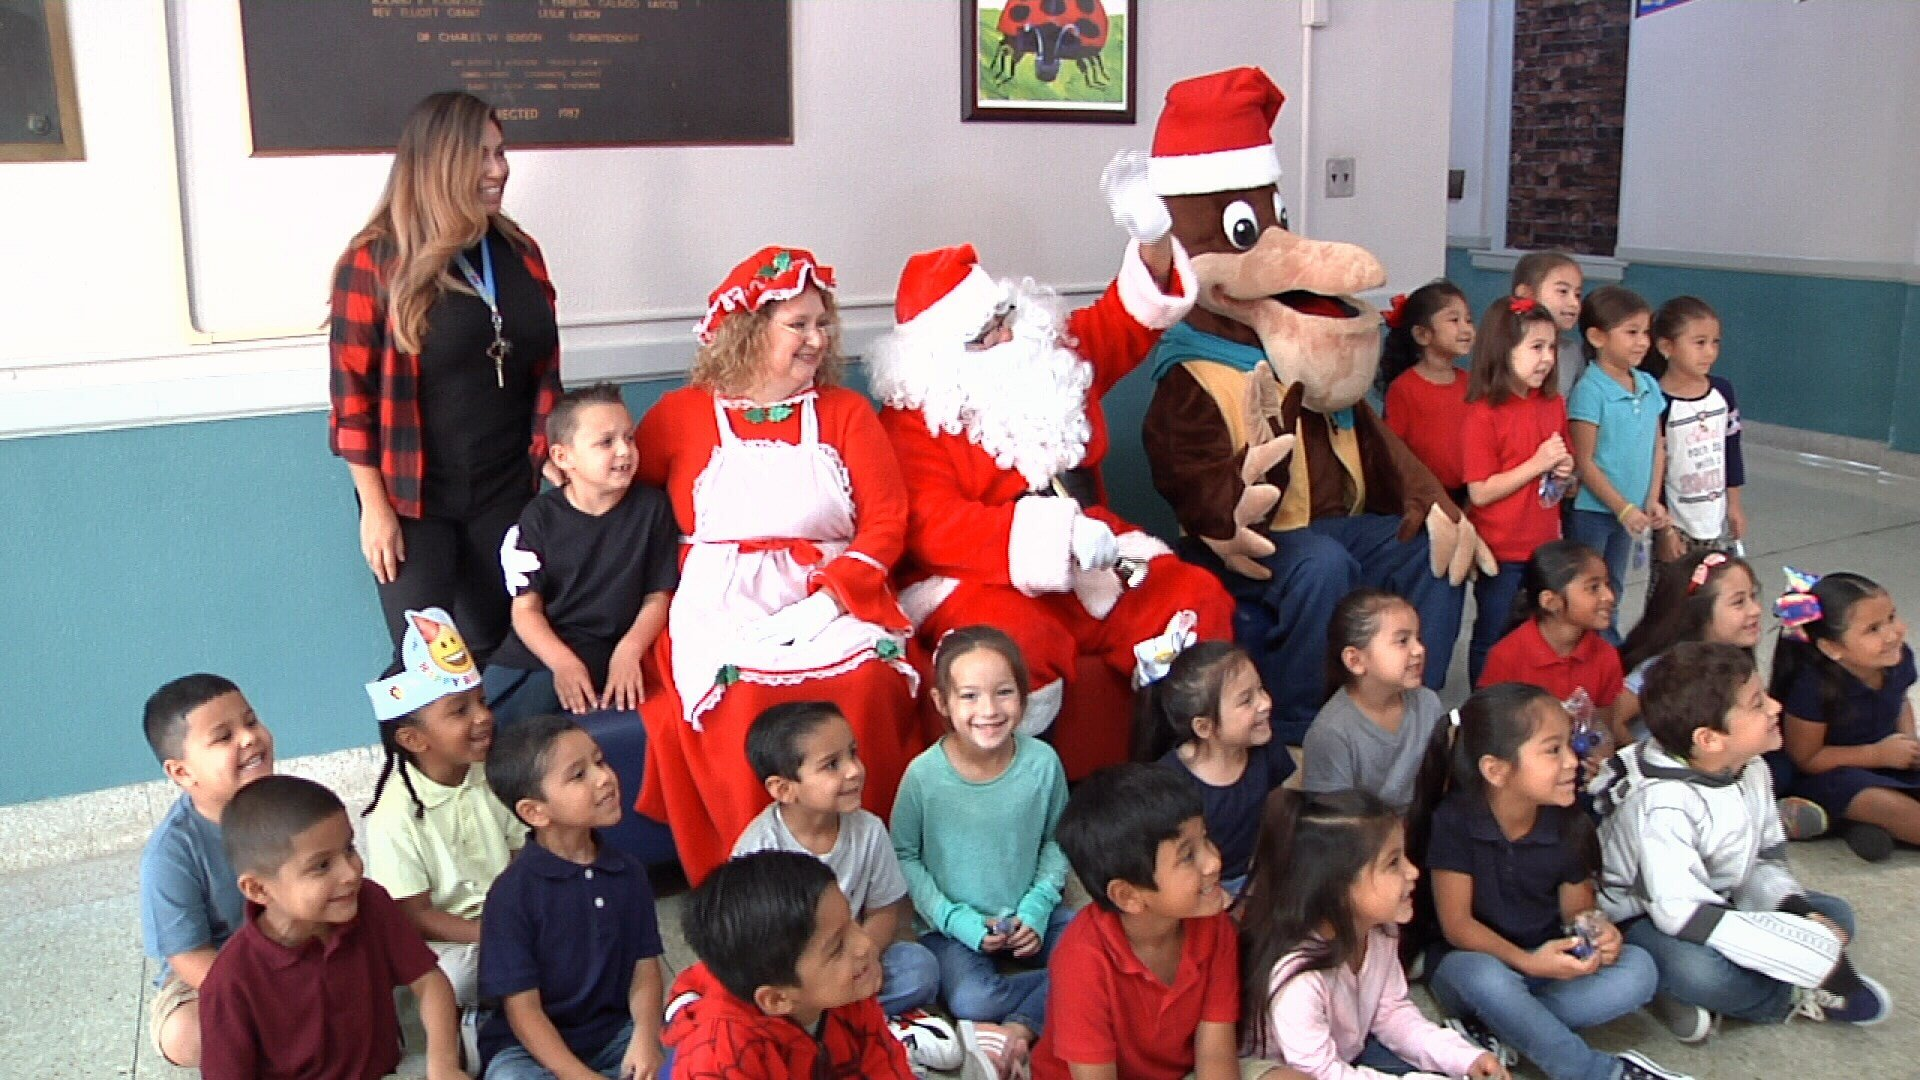 The Port of Corpus Christi hosted a Christmas celebration at Menger Elementary Tuesday morning.